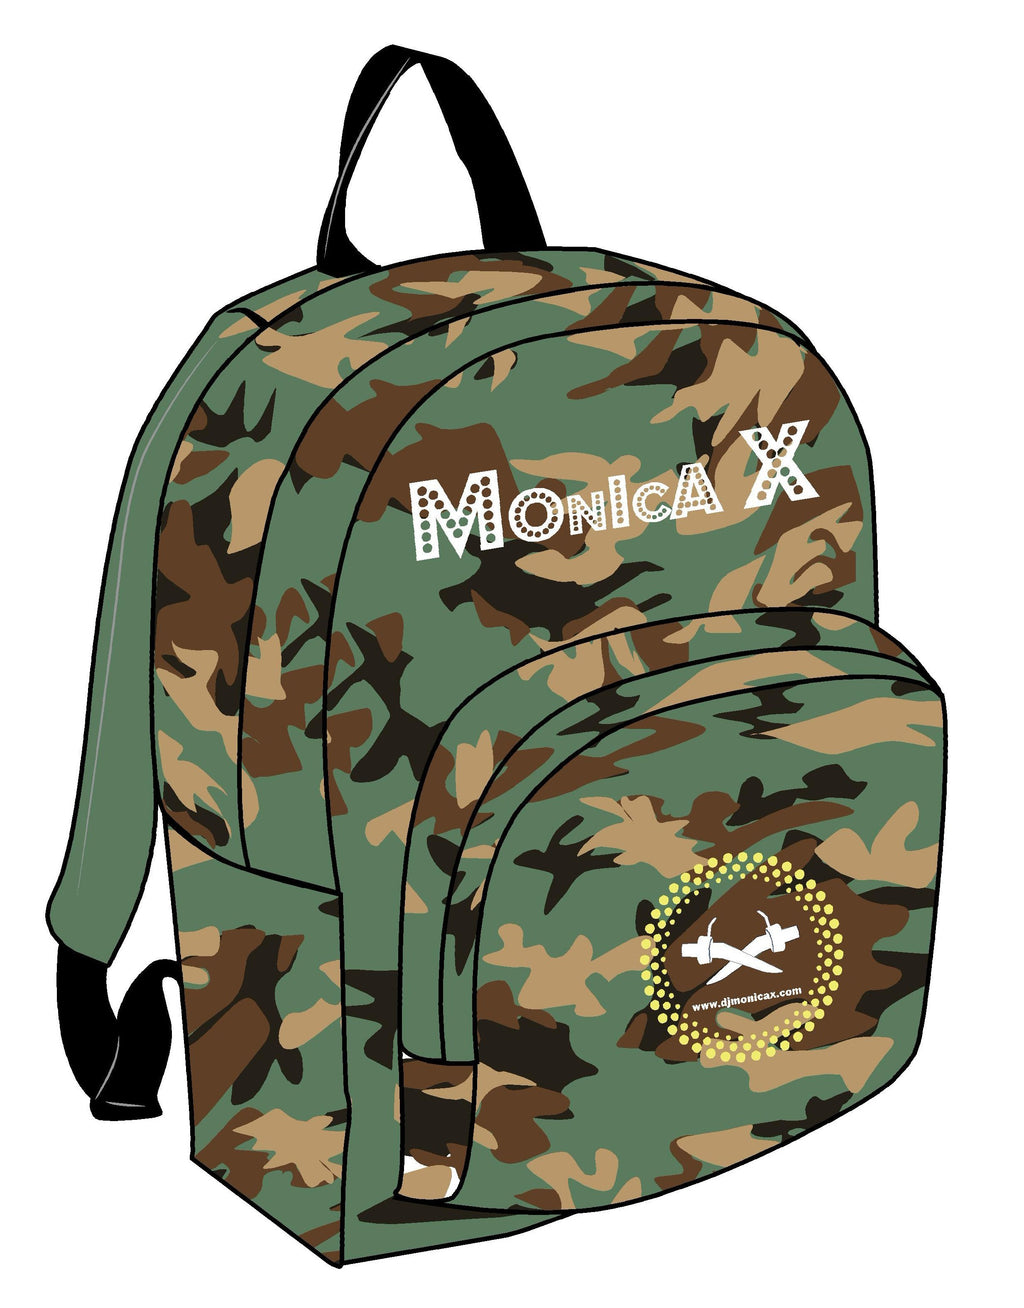 Mochila de Camuflaje - Logo Mónica X Bordado - Camouflage Backpack - Monica X Embroidered Logo